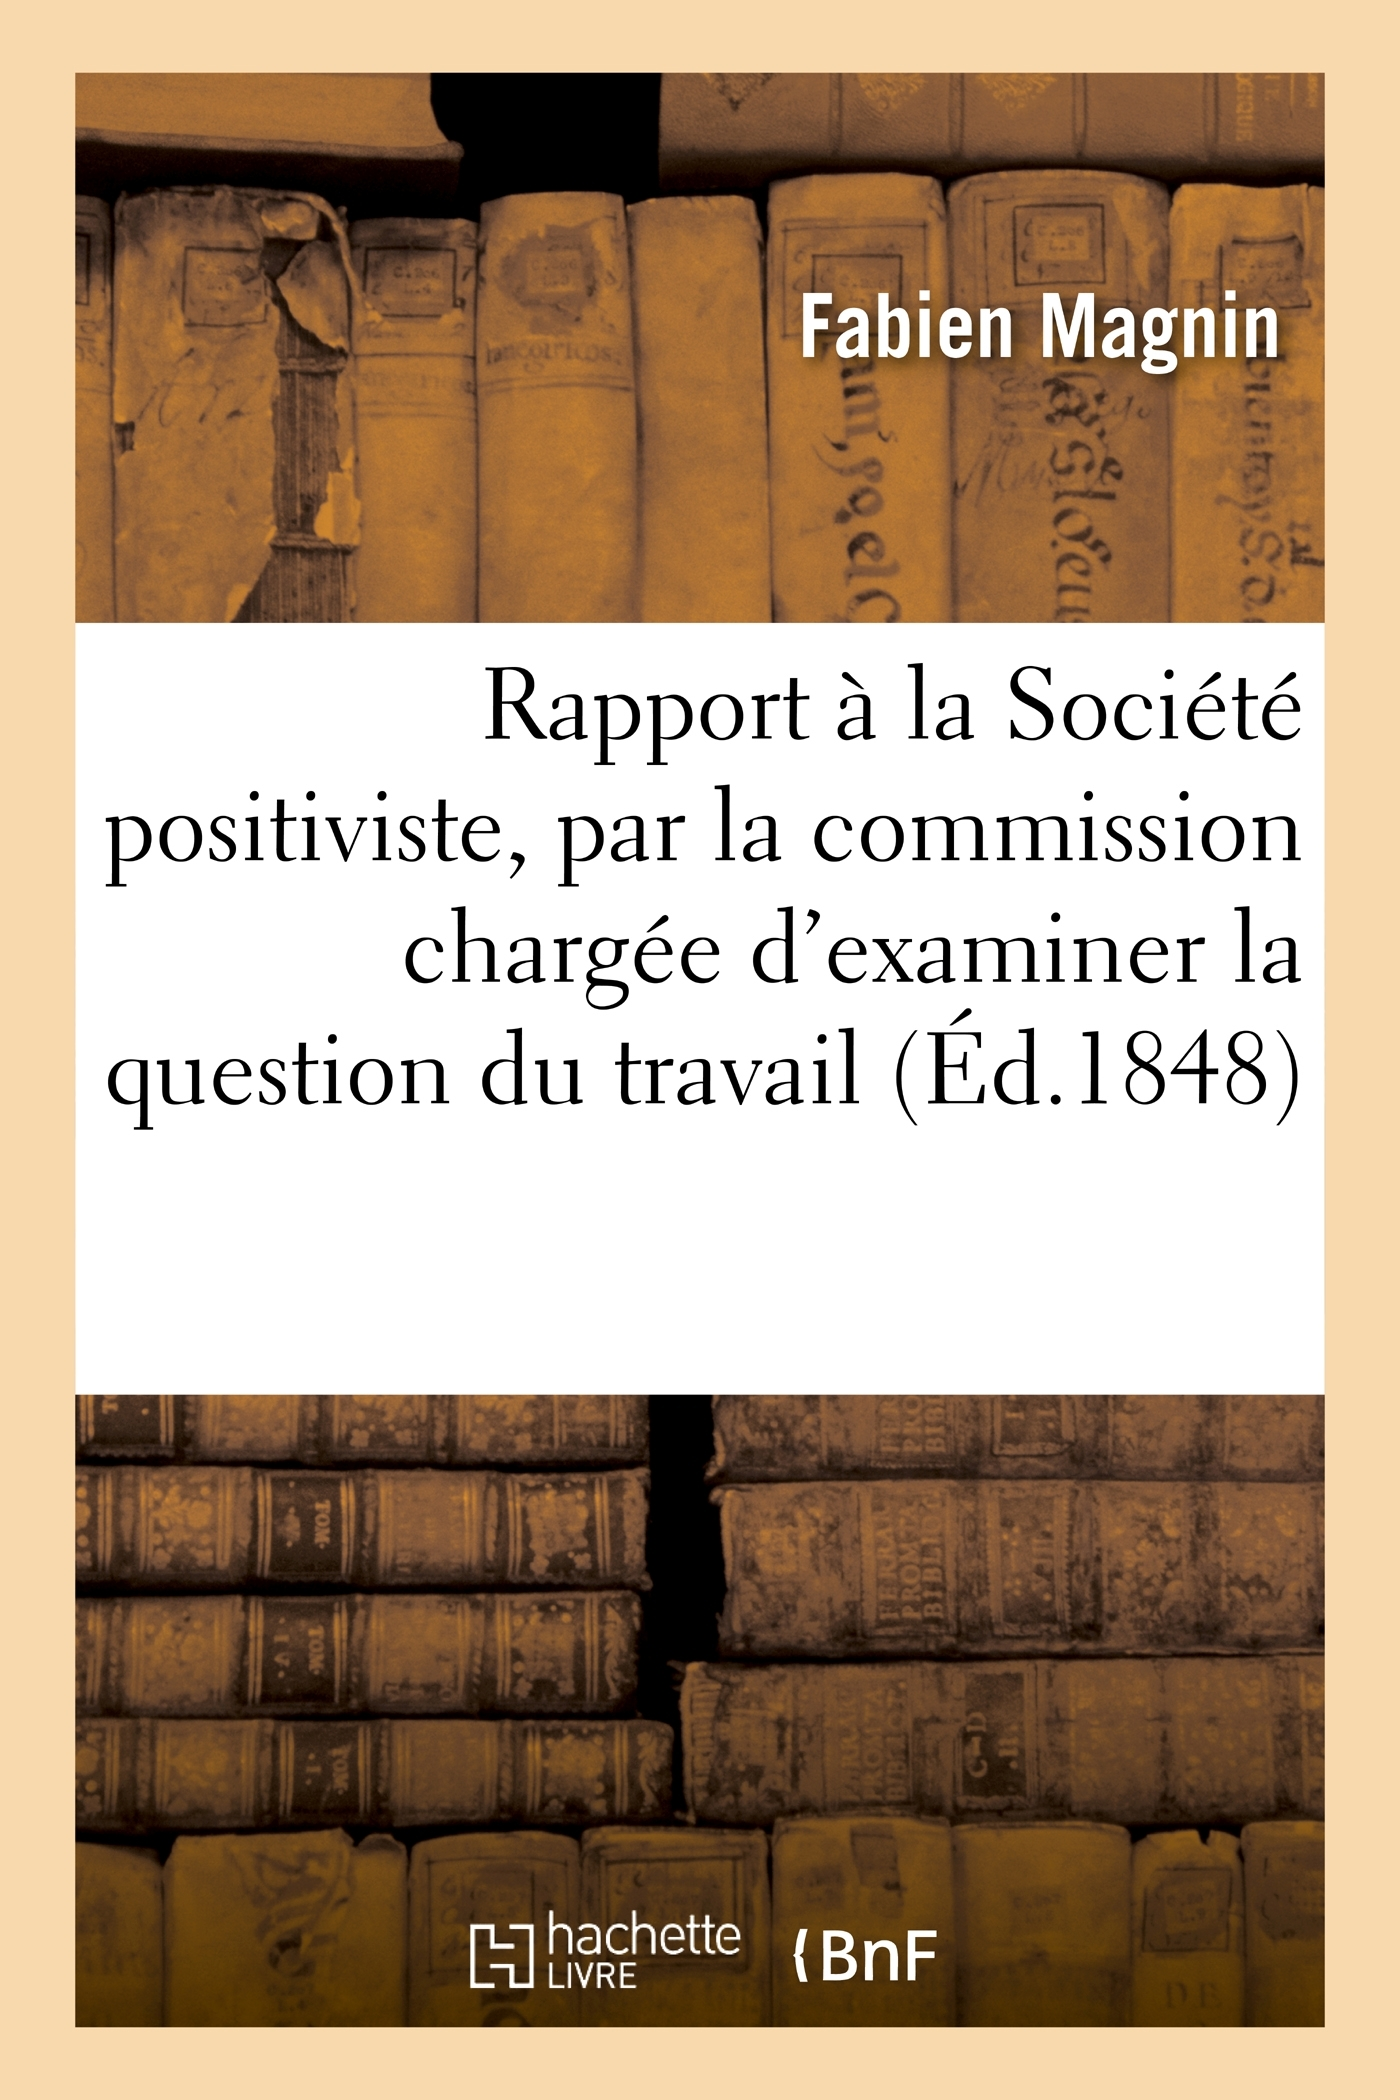 RAPPORT A LA SOCIETE POSITIVISTE, PAR LA COMMISSION CHARGEE D'EXAMINER LA QUESTION DU TRAVAIL